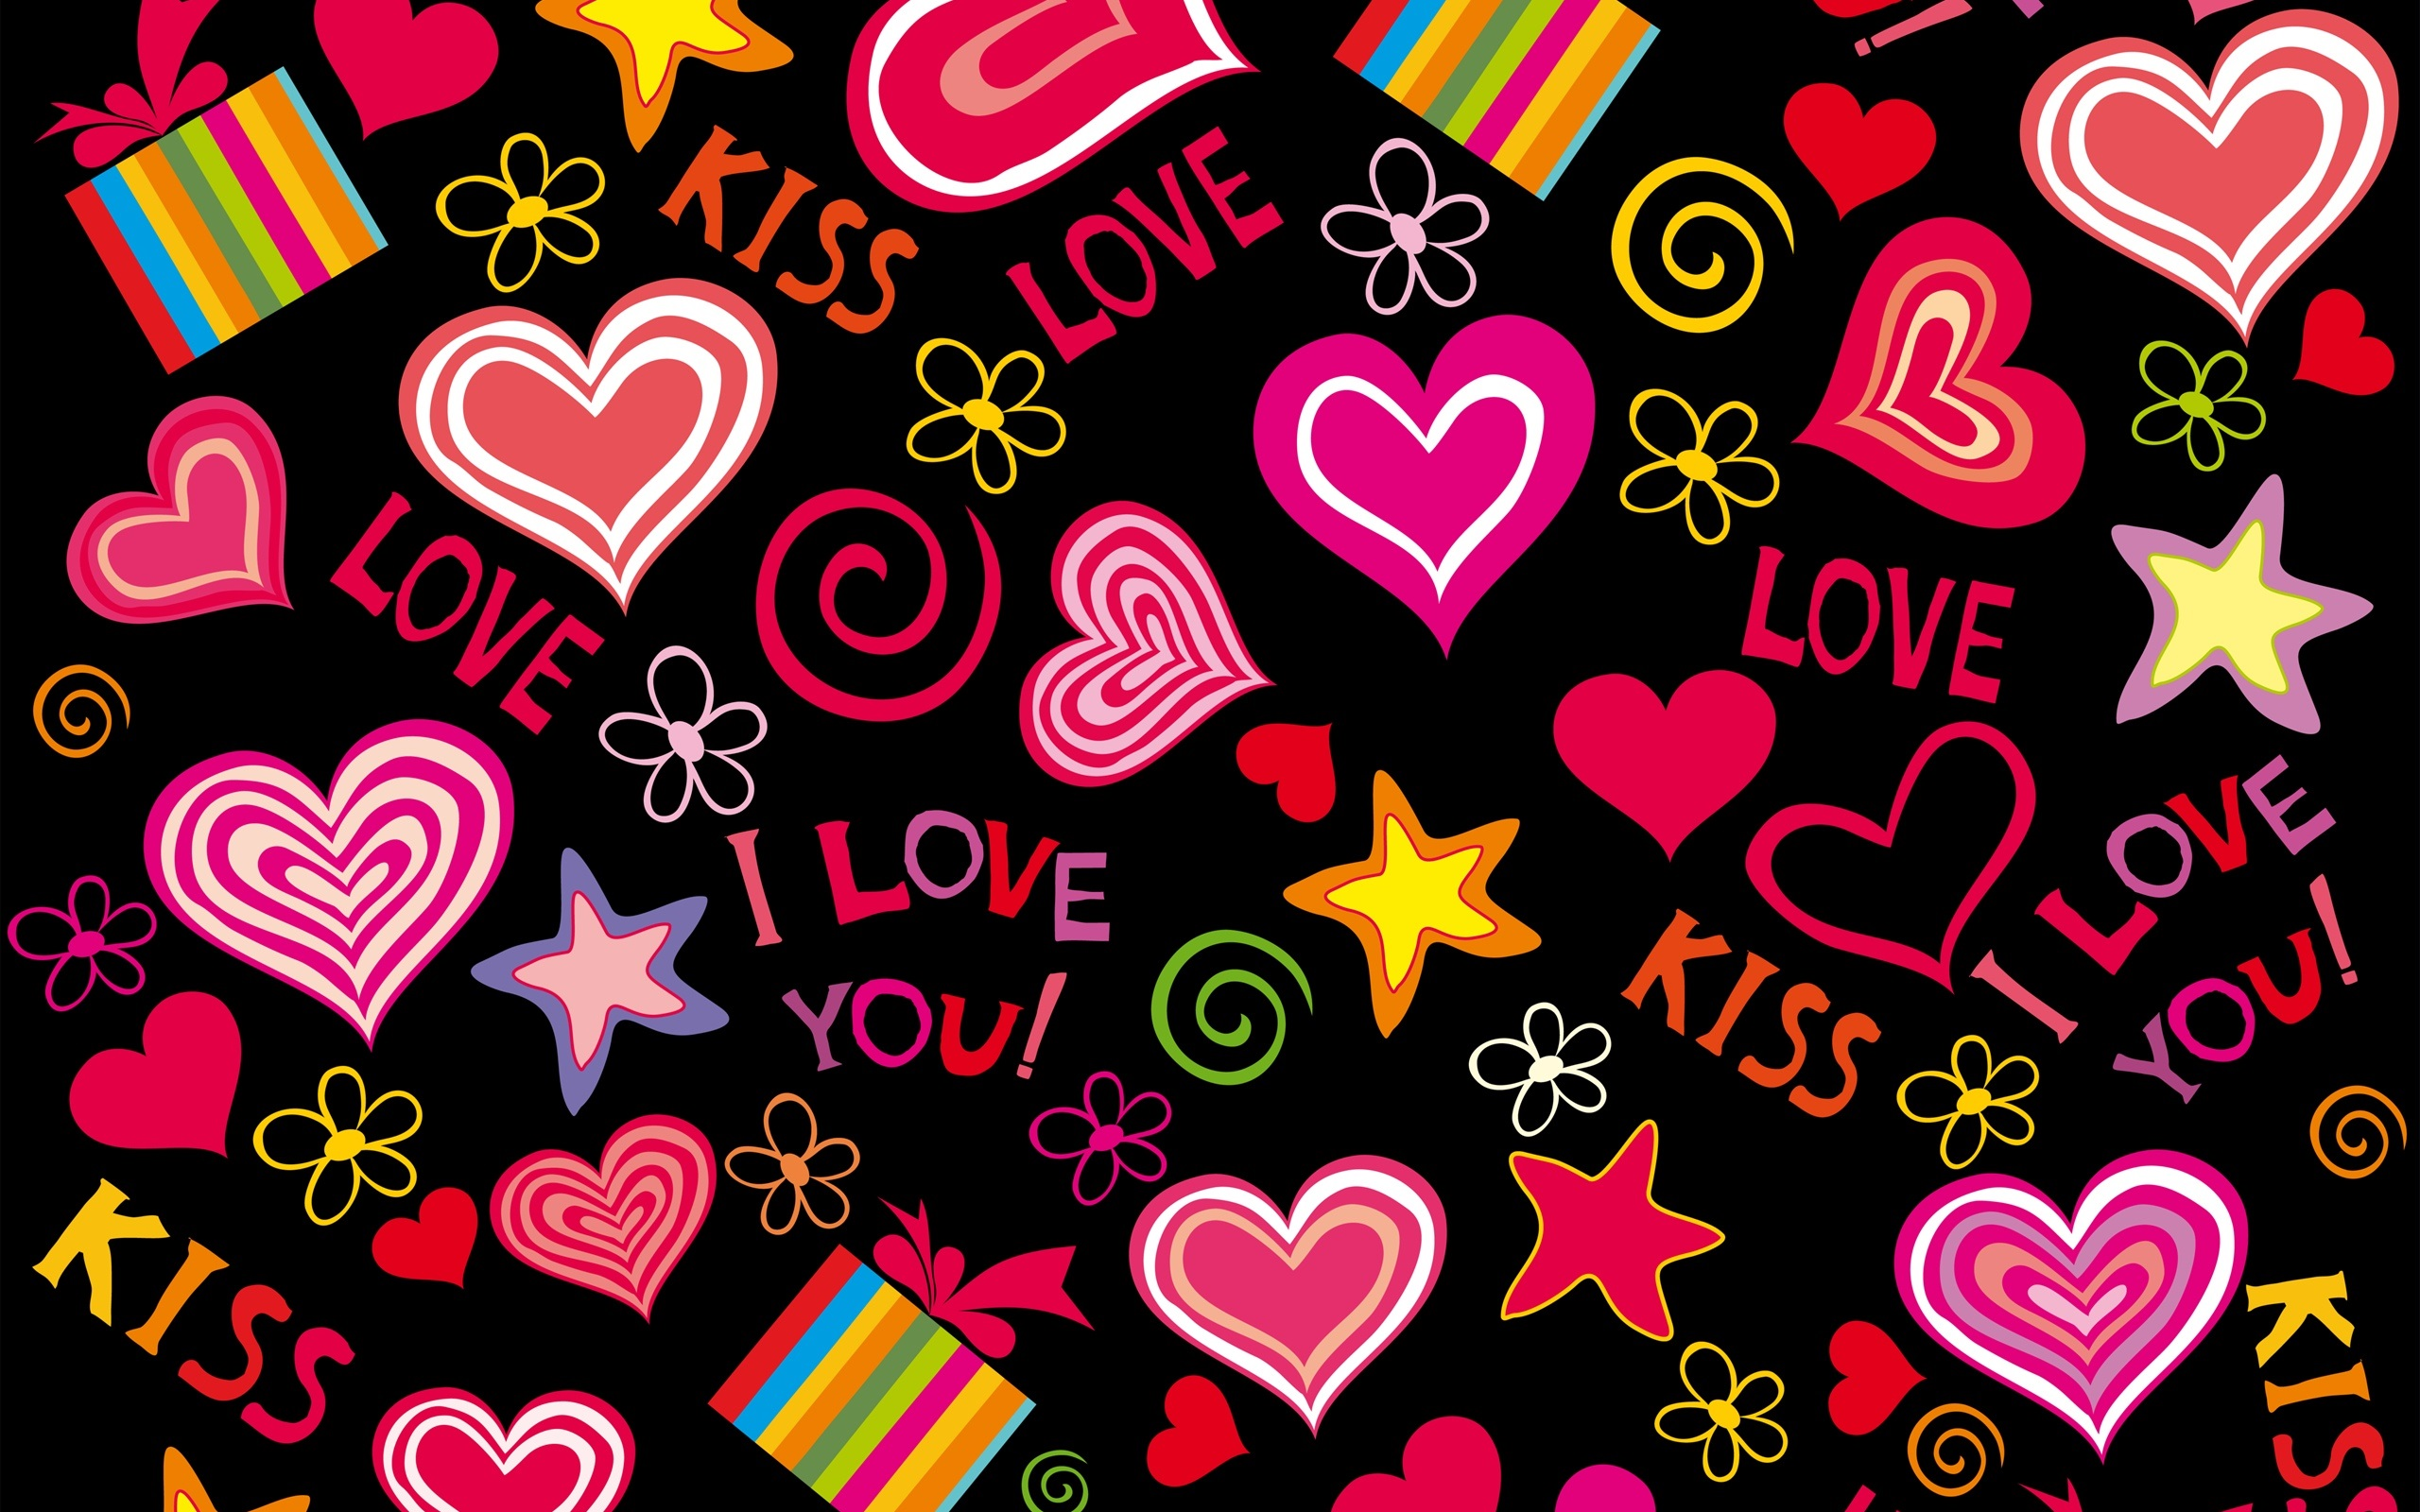 Love Wallpapers 2560x1600 : Download Wallpaper 2560x1600 Love hearts, vector, romantic, Valentine day HD Background